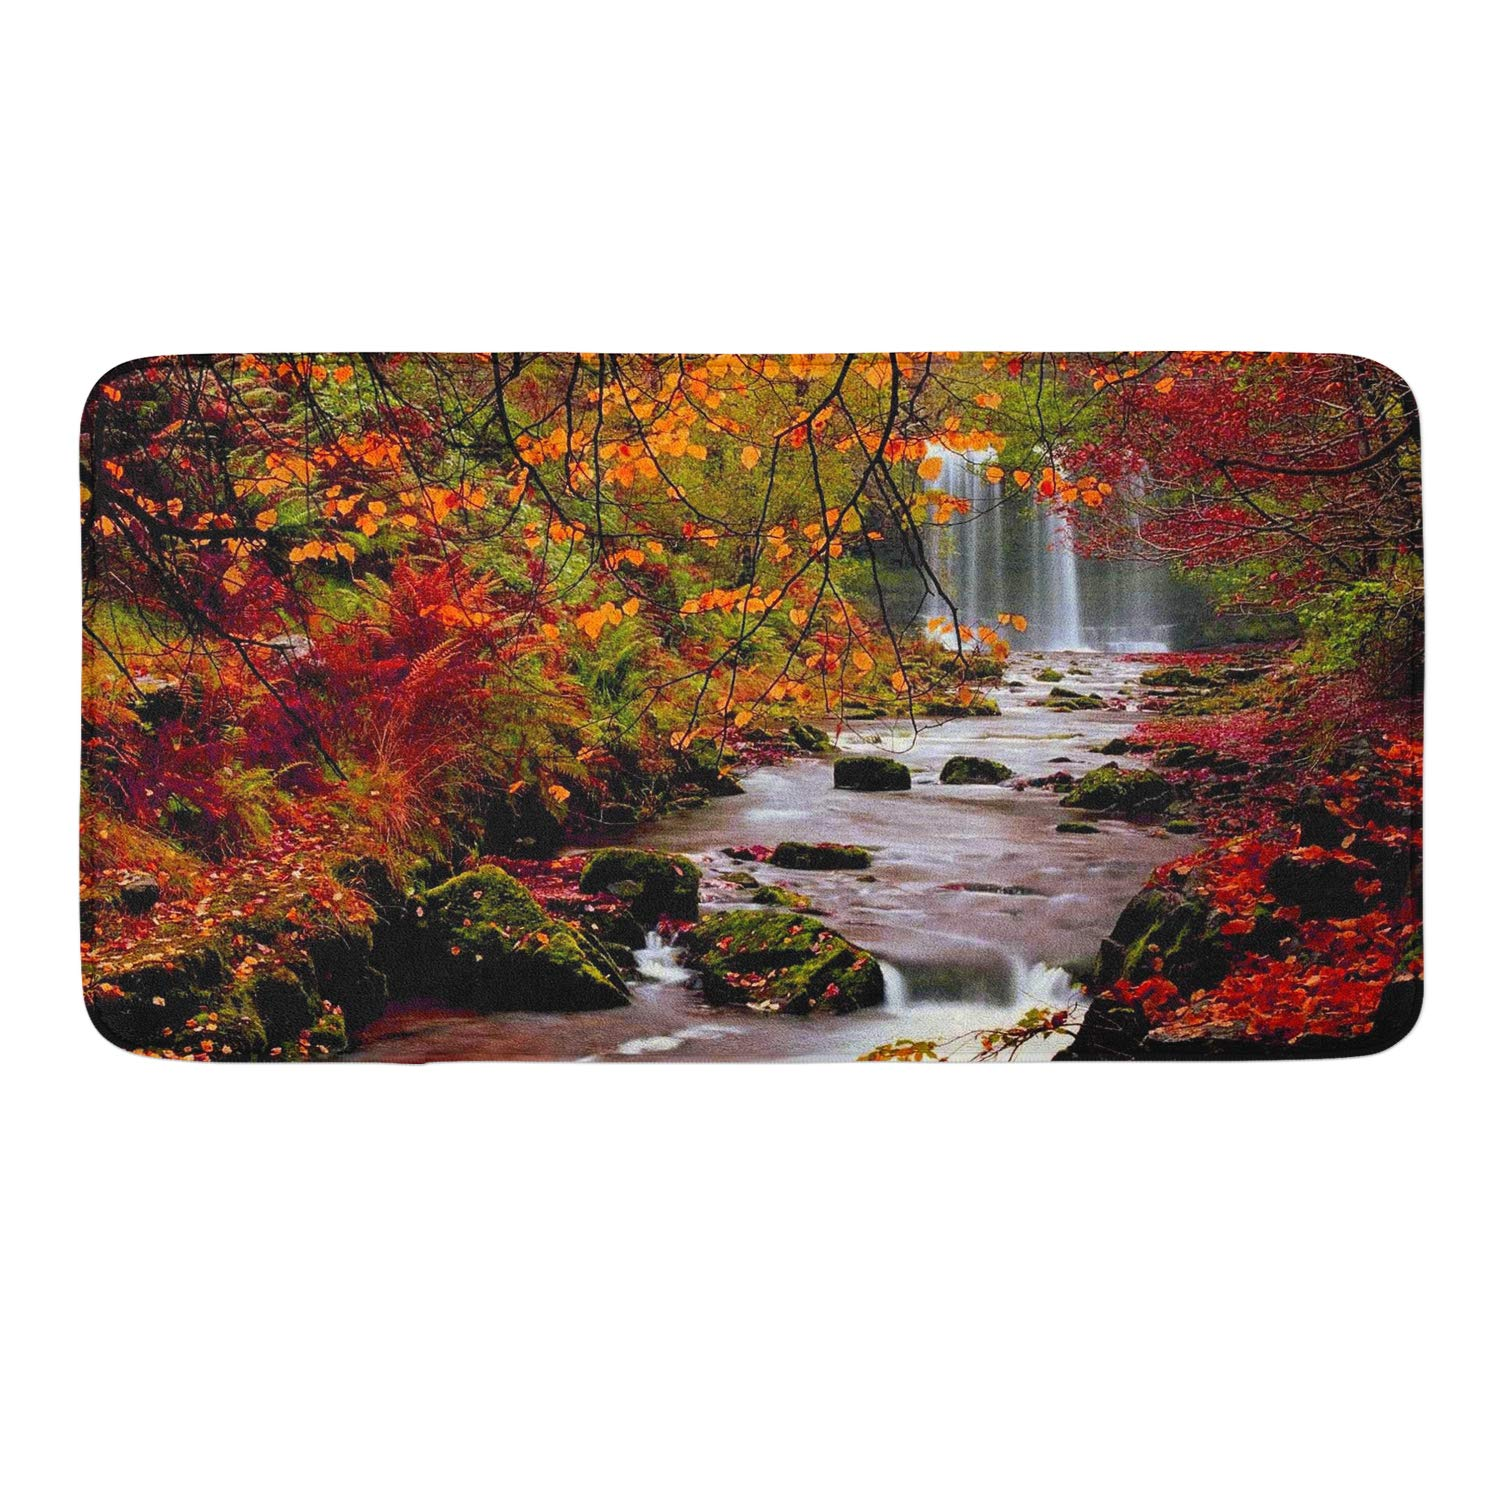 CIGOCI Memory Foam Non-Slip Bathroom Mat - 18 x 36 Inch, Extra Absorbent,Soft,Duarable and Quick-Dry Shaggy Mat, 3D PrintWaterfall Maple